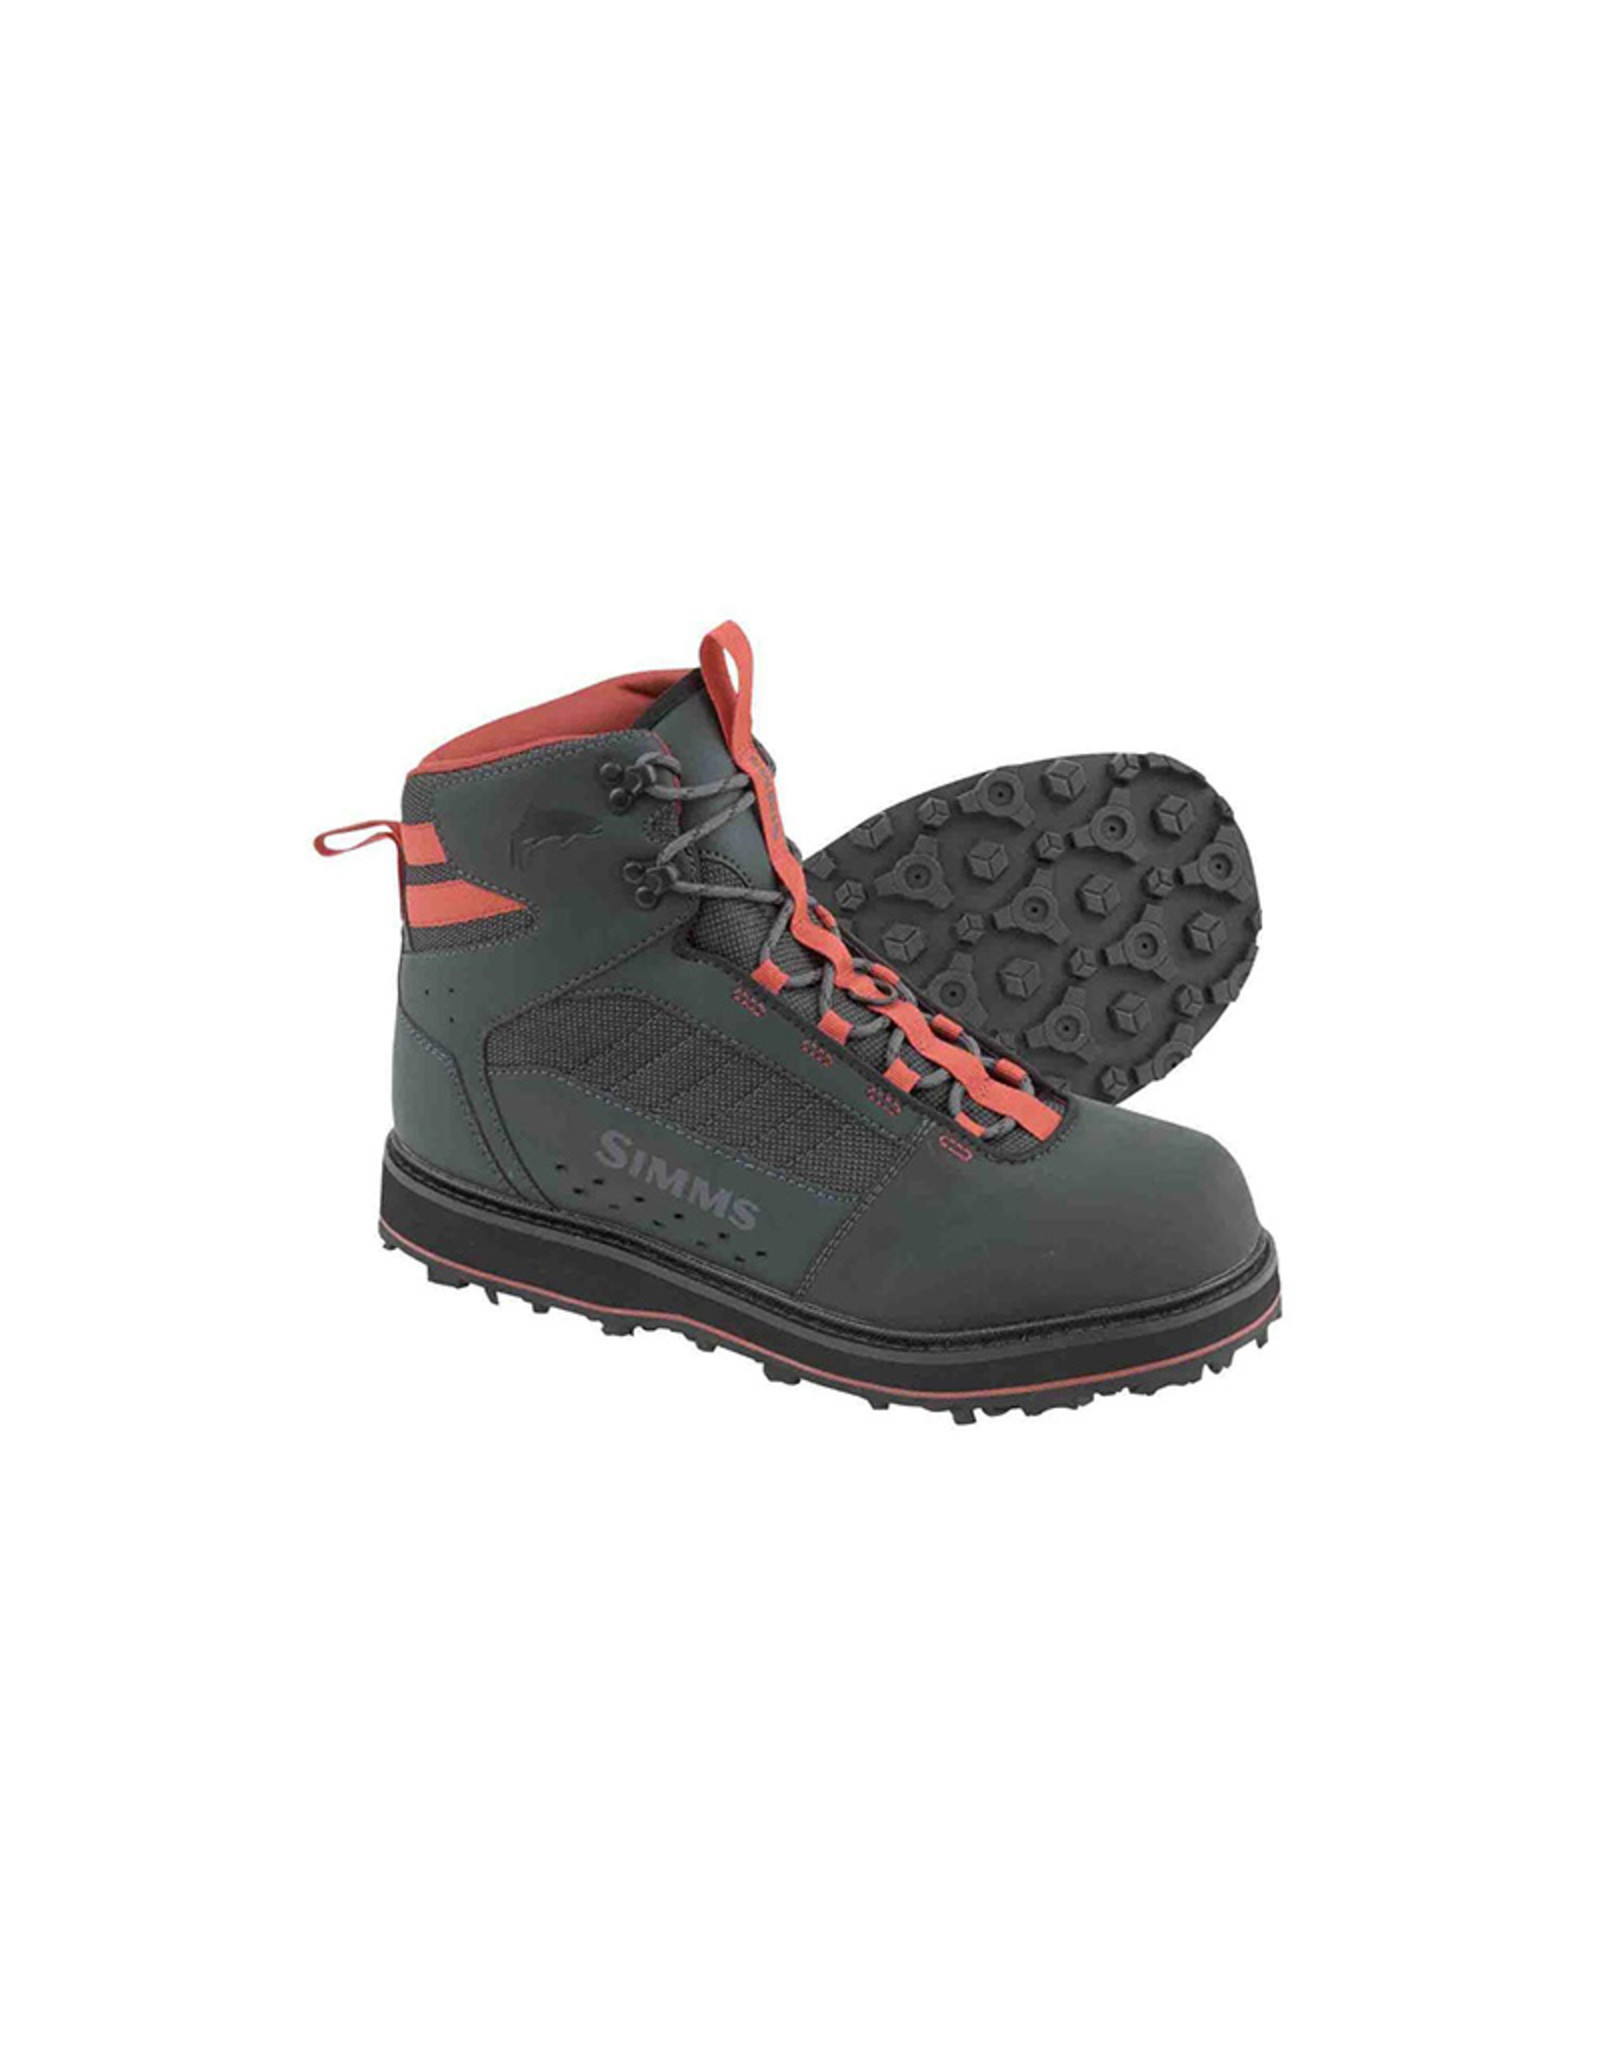 Simms Tributary Boot: Rubber Sole